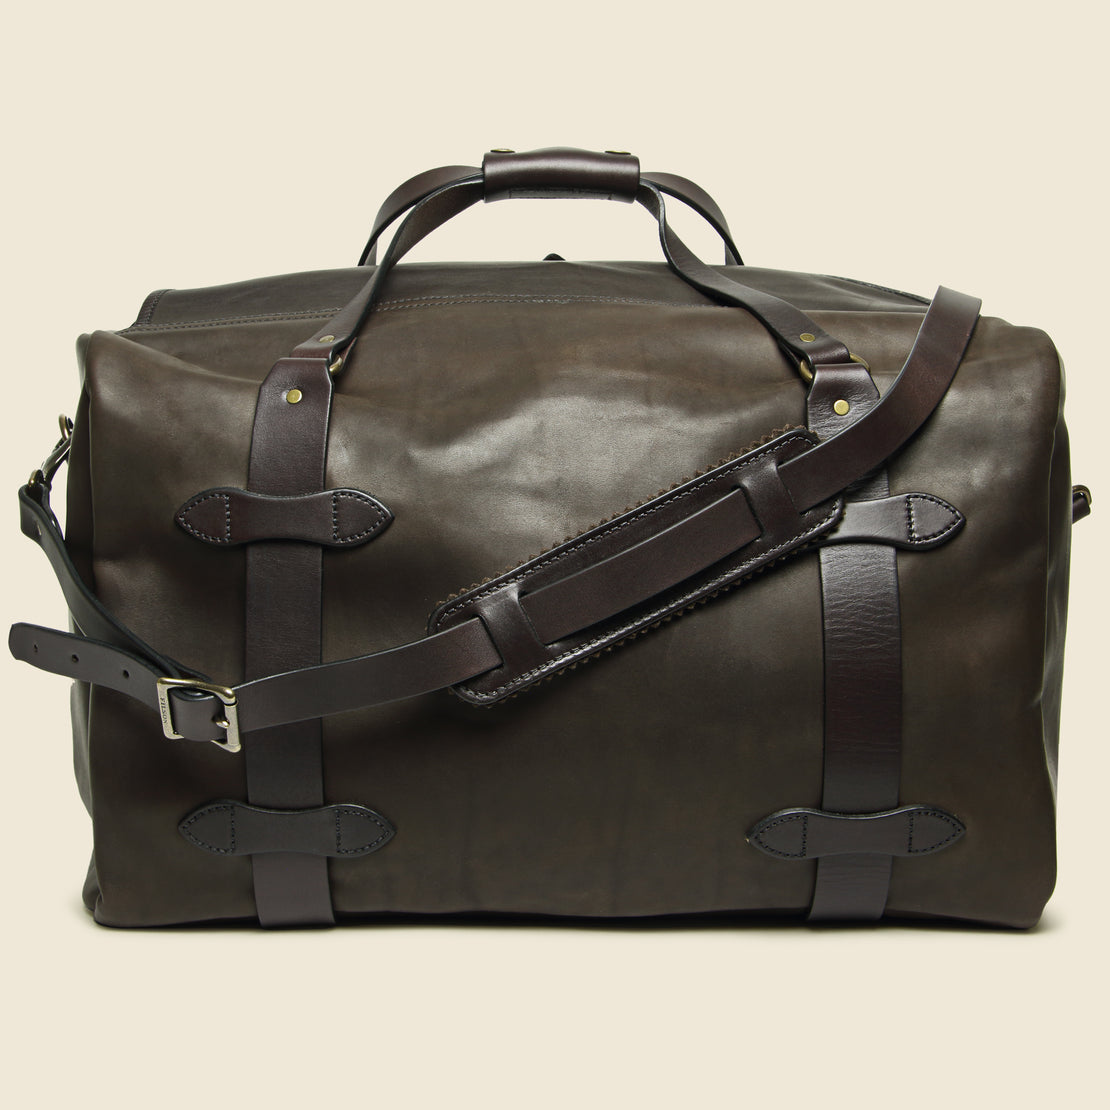 Weatherproof Medium Duffle Bag - Sierra Brown